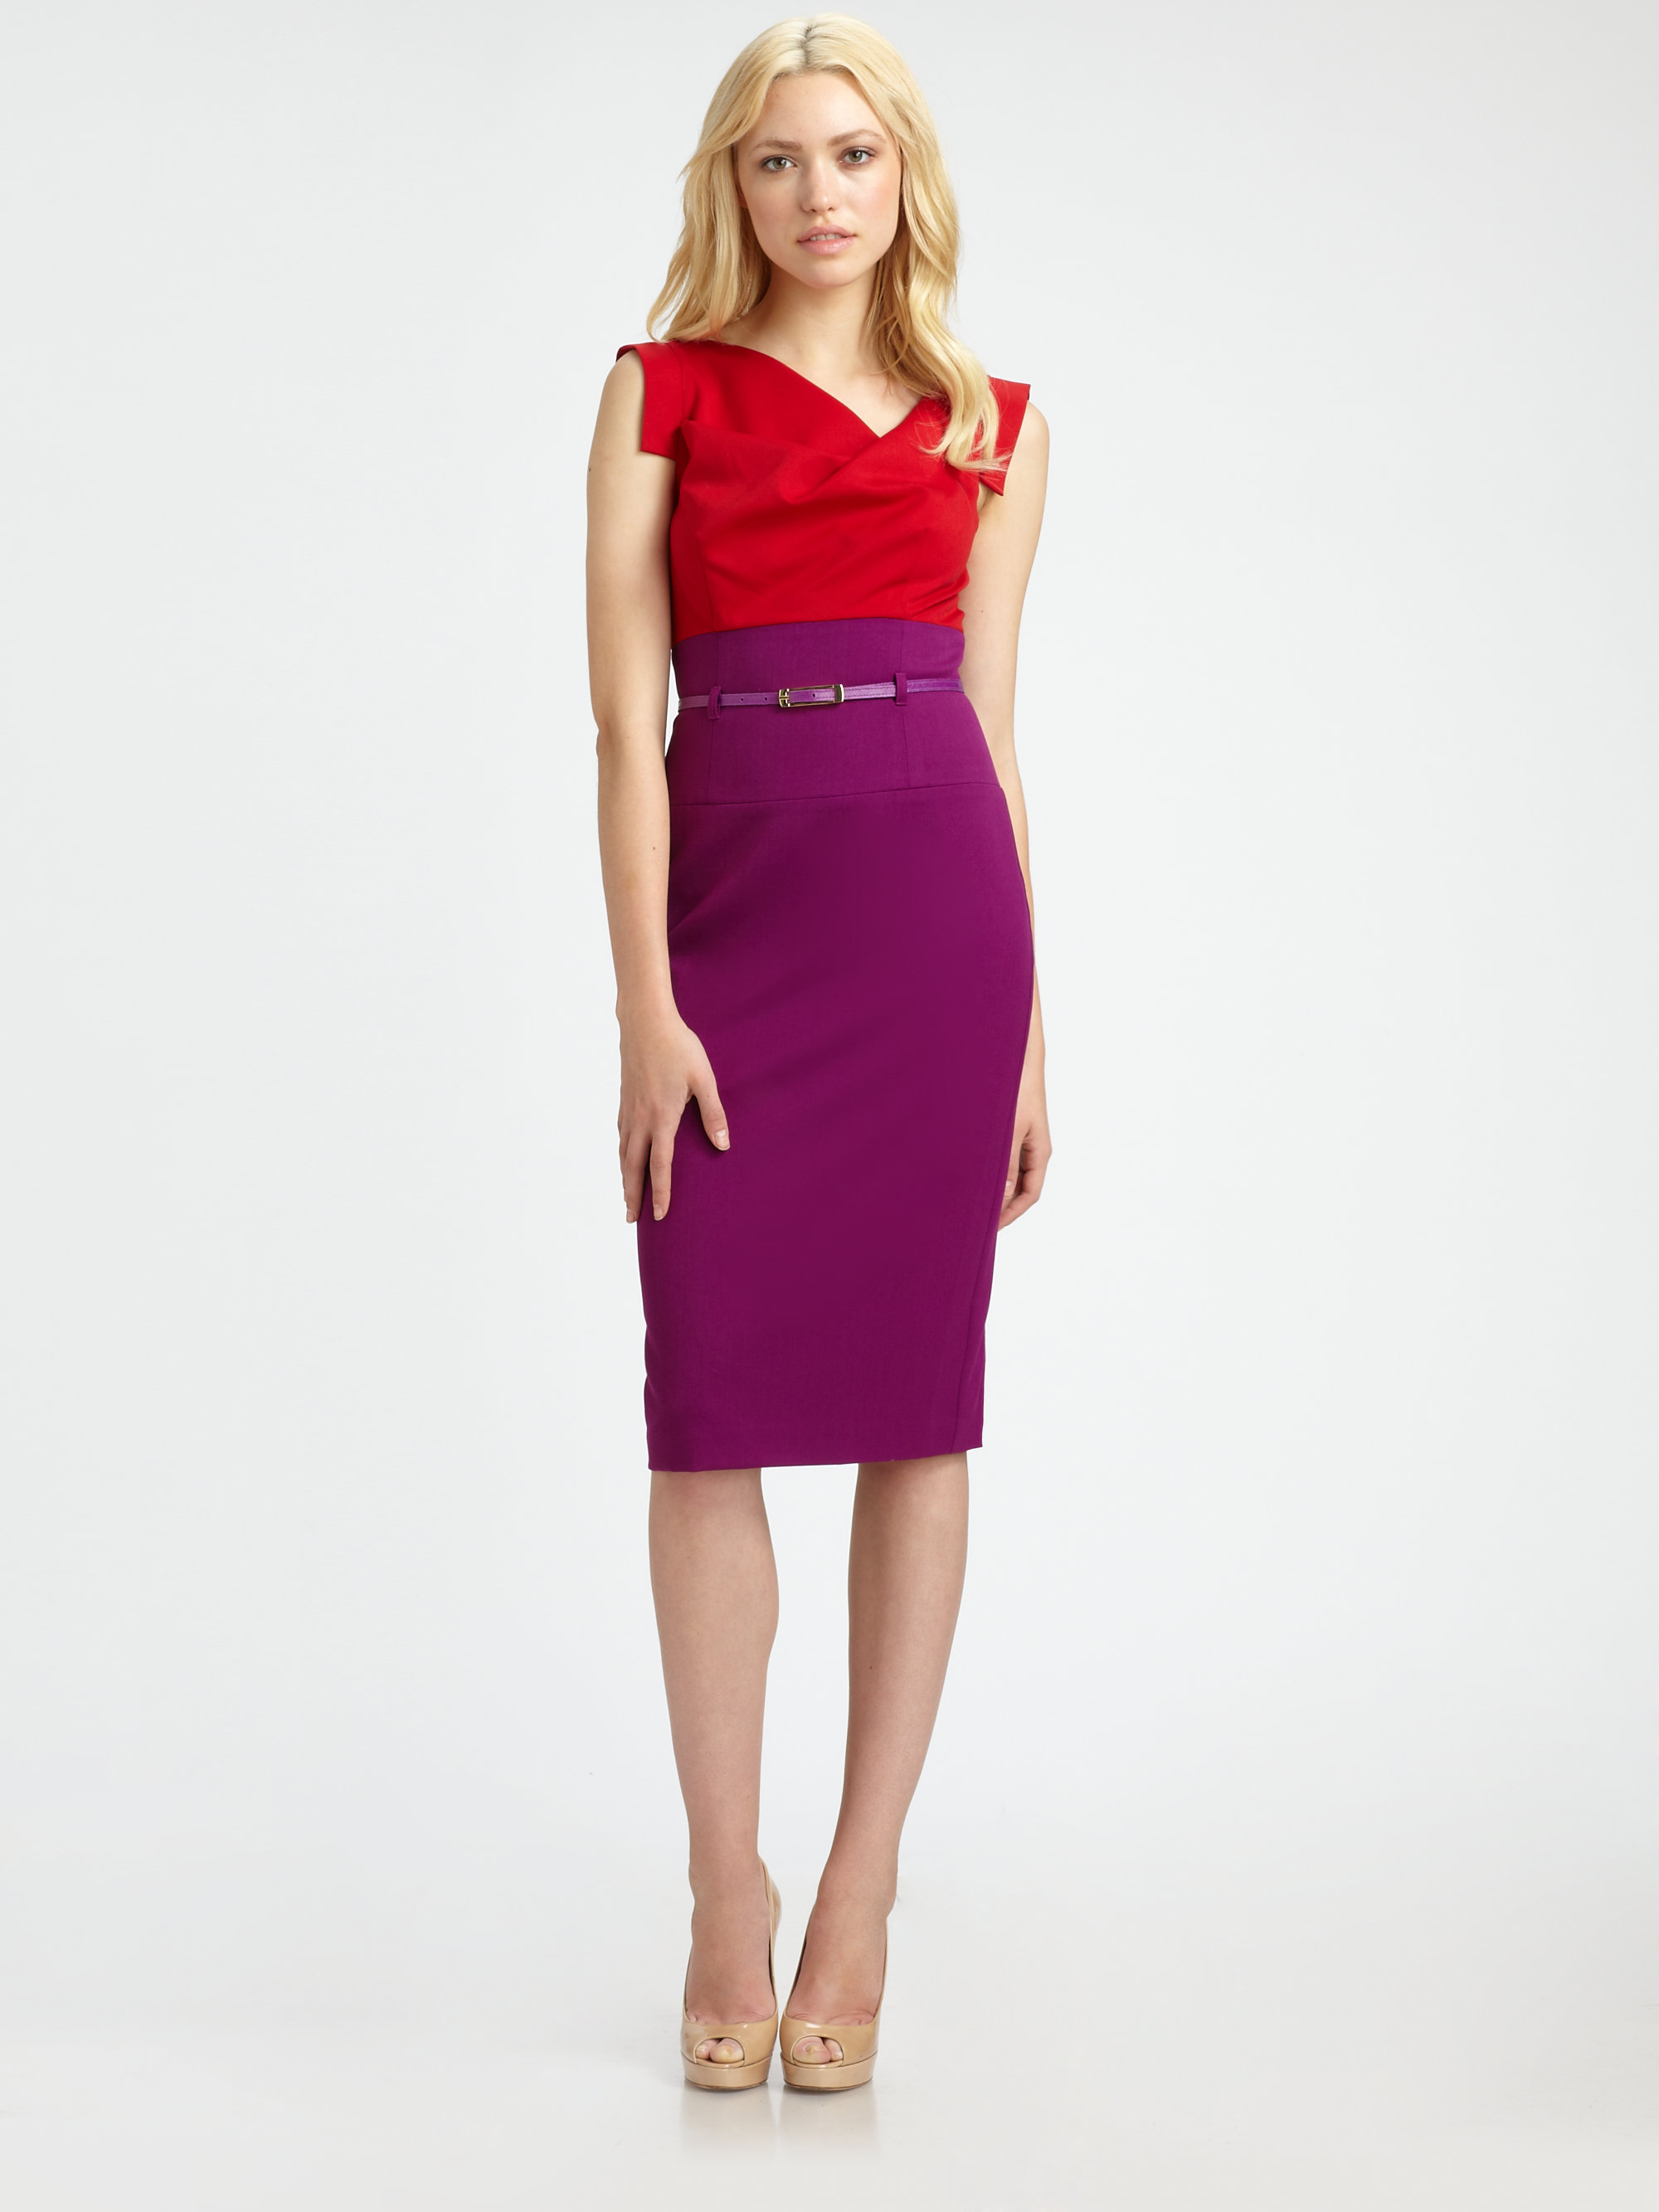 Black Halo Jackie O Colorblock Dress In Red Lyst